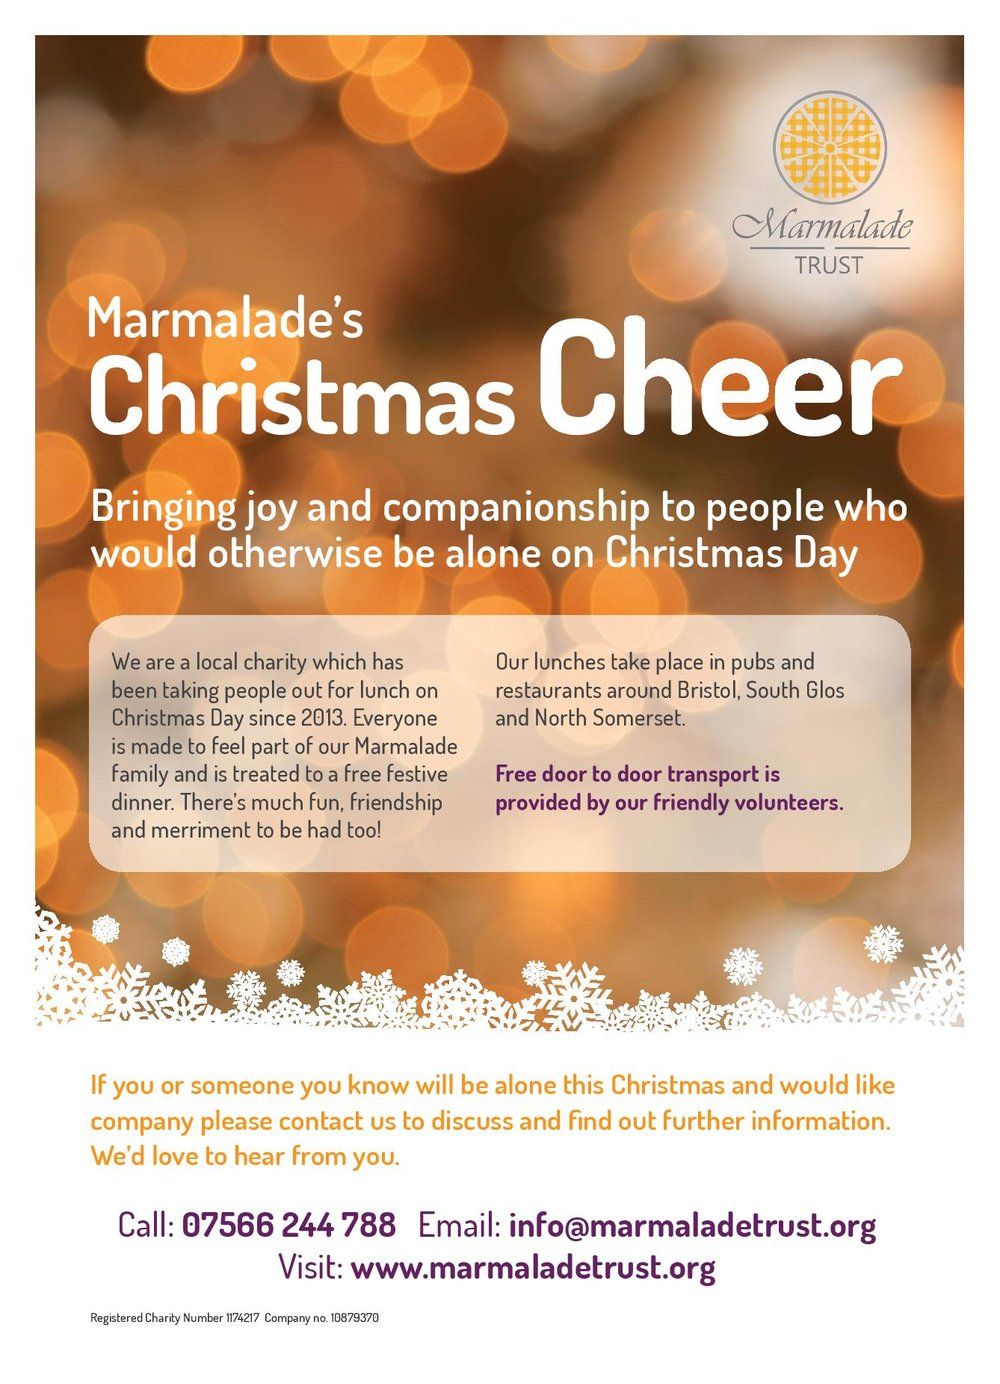 Marmalade 27s Christmas Cheer_Referral Poster (1)-page-001.jpg